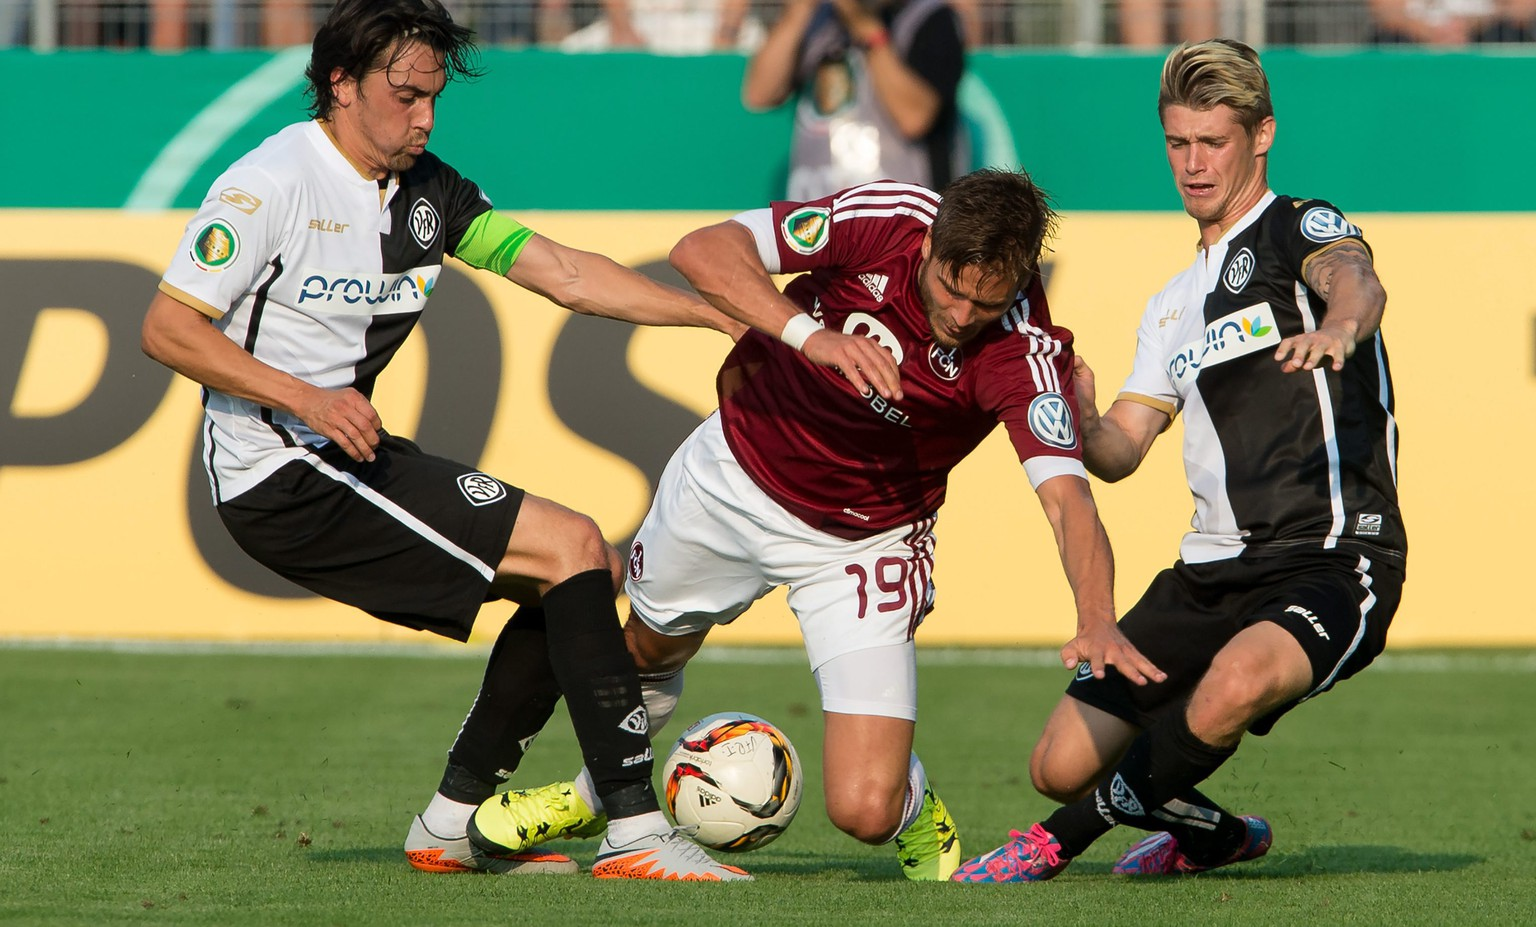 epa04879396 Aalen's Markus Schwabl (L) and Dennis Chessa in action against Nuernberg's Rurik Gislason (C) during the German soccer DFB Cup first round match between VfR Aalen and 1. FC Nuernberg at the Scholz Arena in Aalen, Germany, 10 August 2015. 